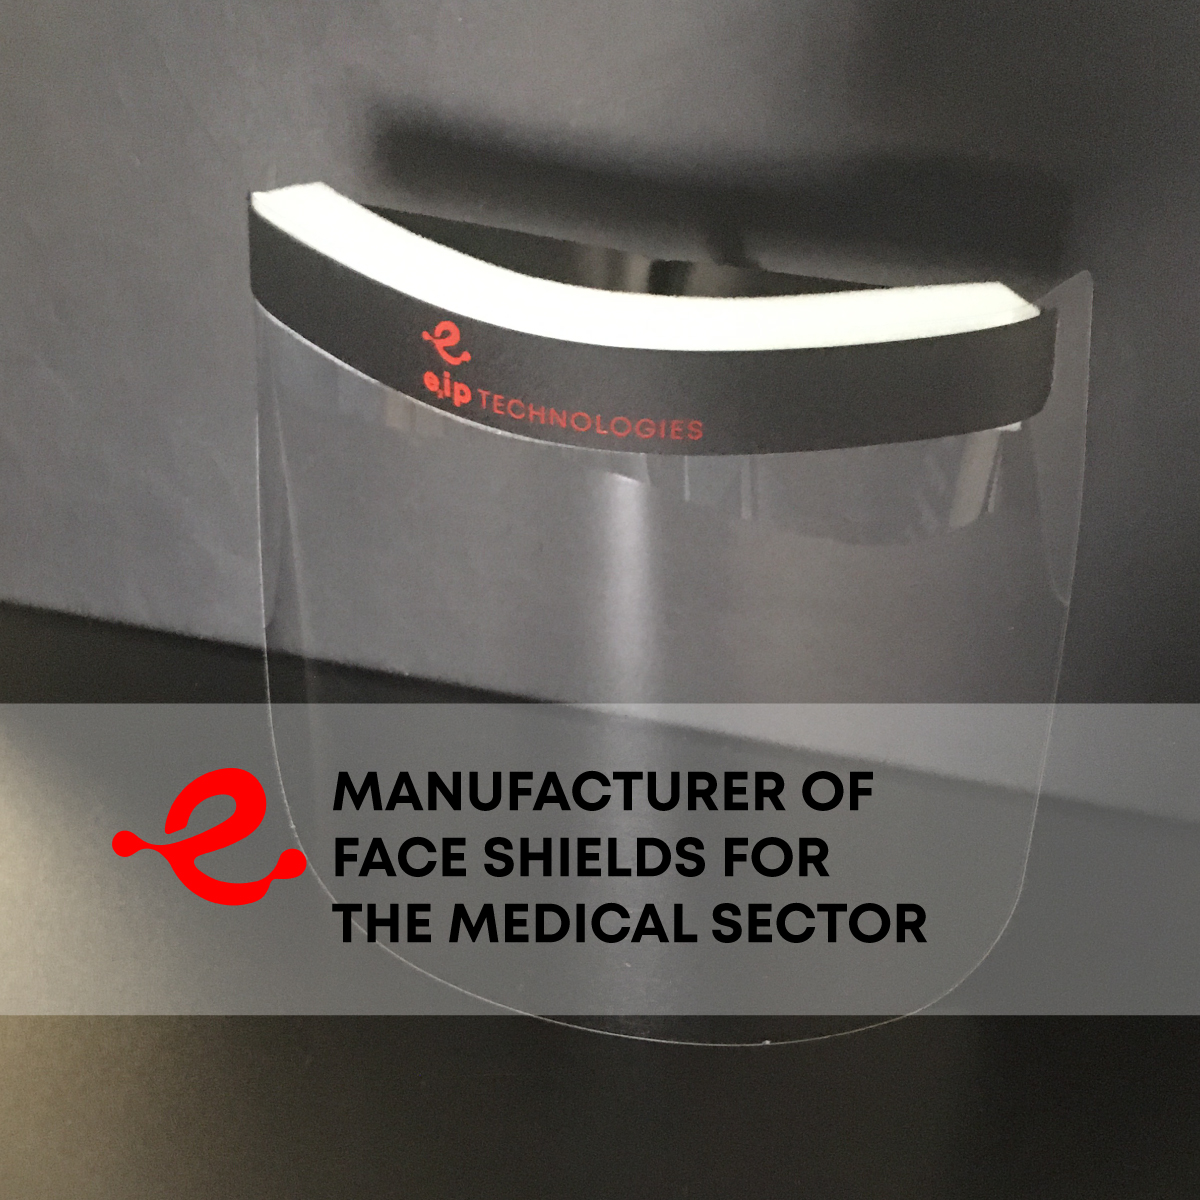 E2IP TECHNOLOGIES IS MANUFACTURING FACE SHIELDS FOR THE MEDICAL SECTOR AMIDST THE COVID-19 PANDEMIC